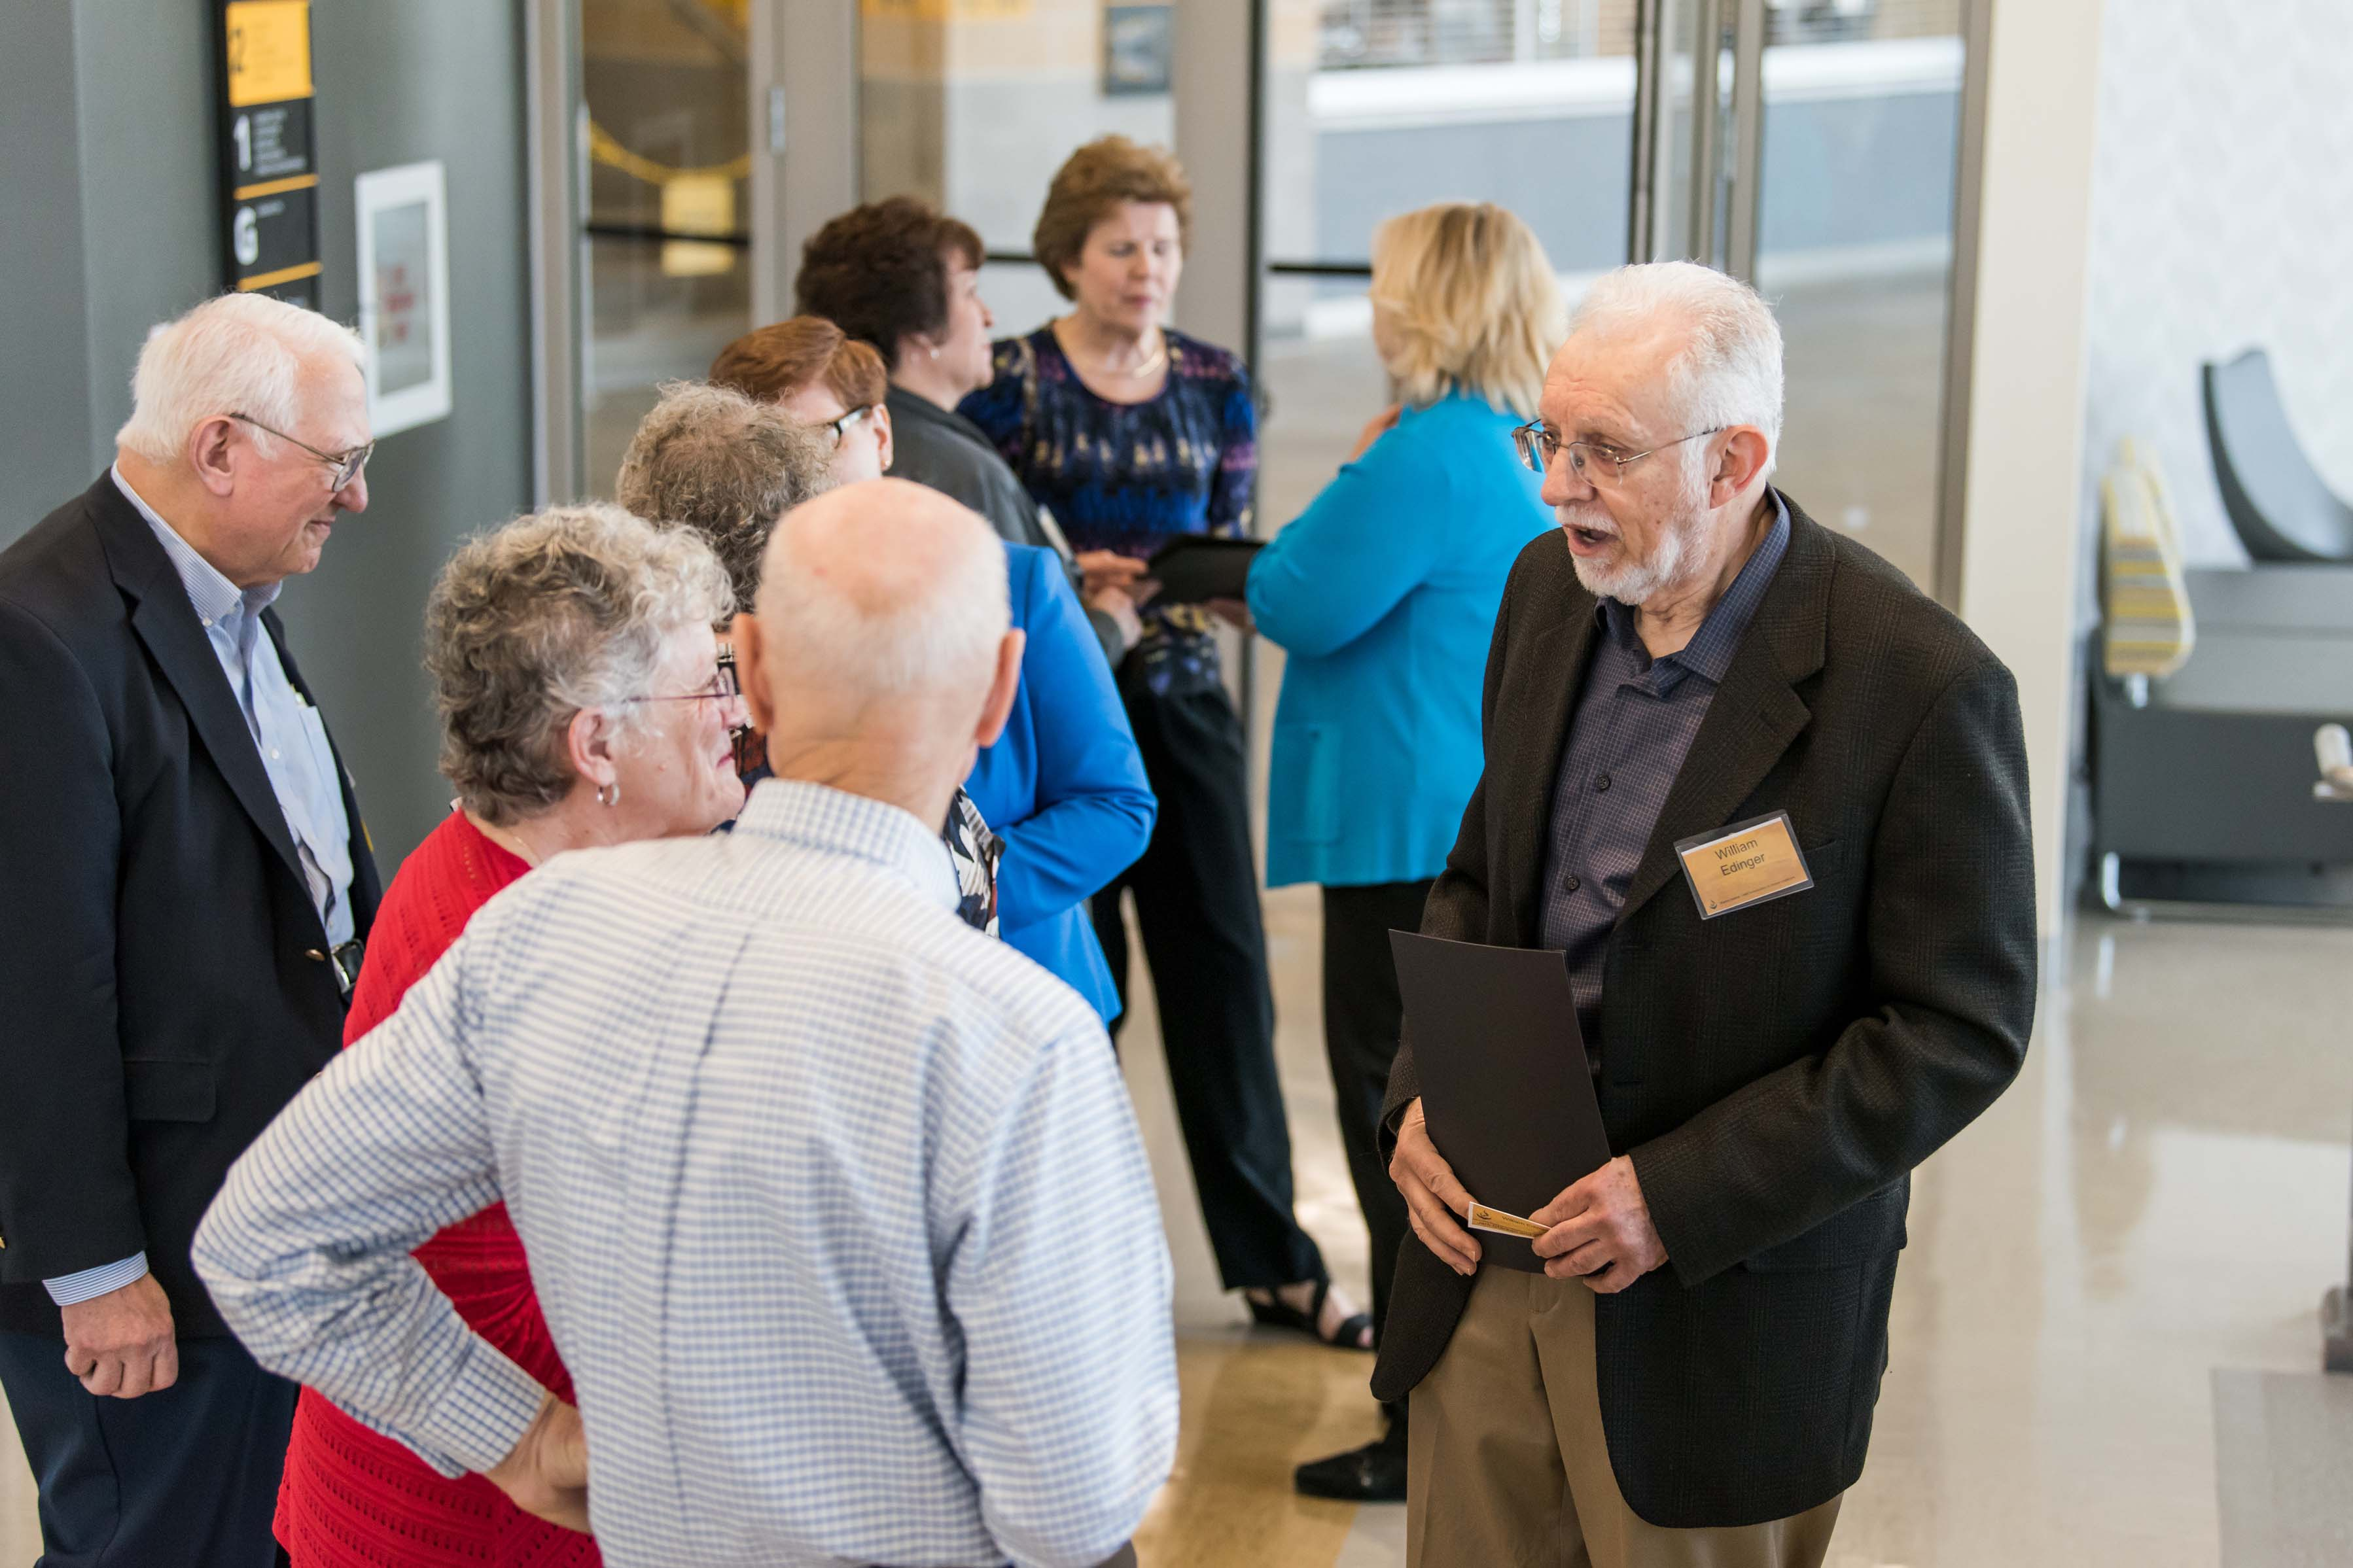 People mingle at Wisdom Institute lunch